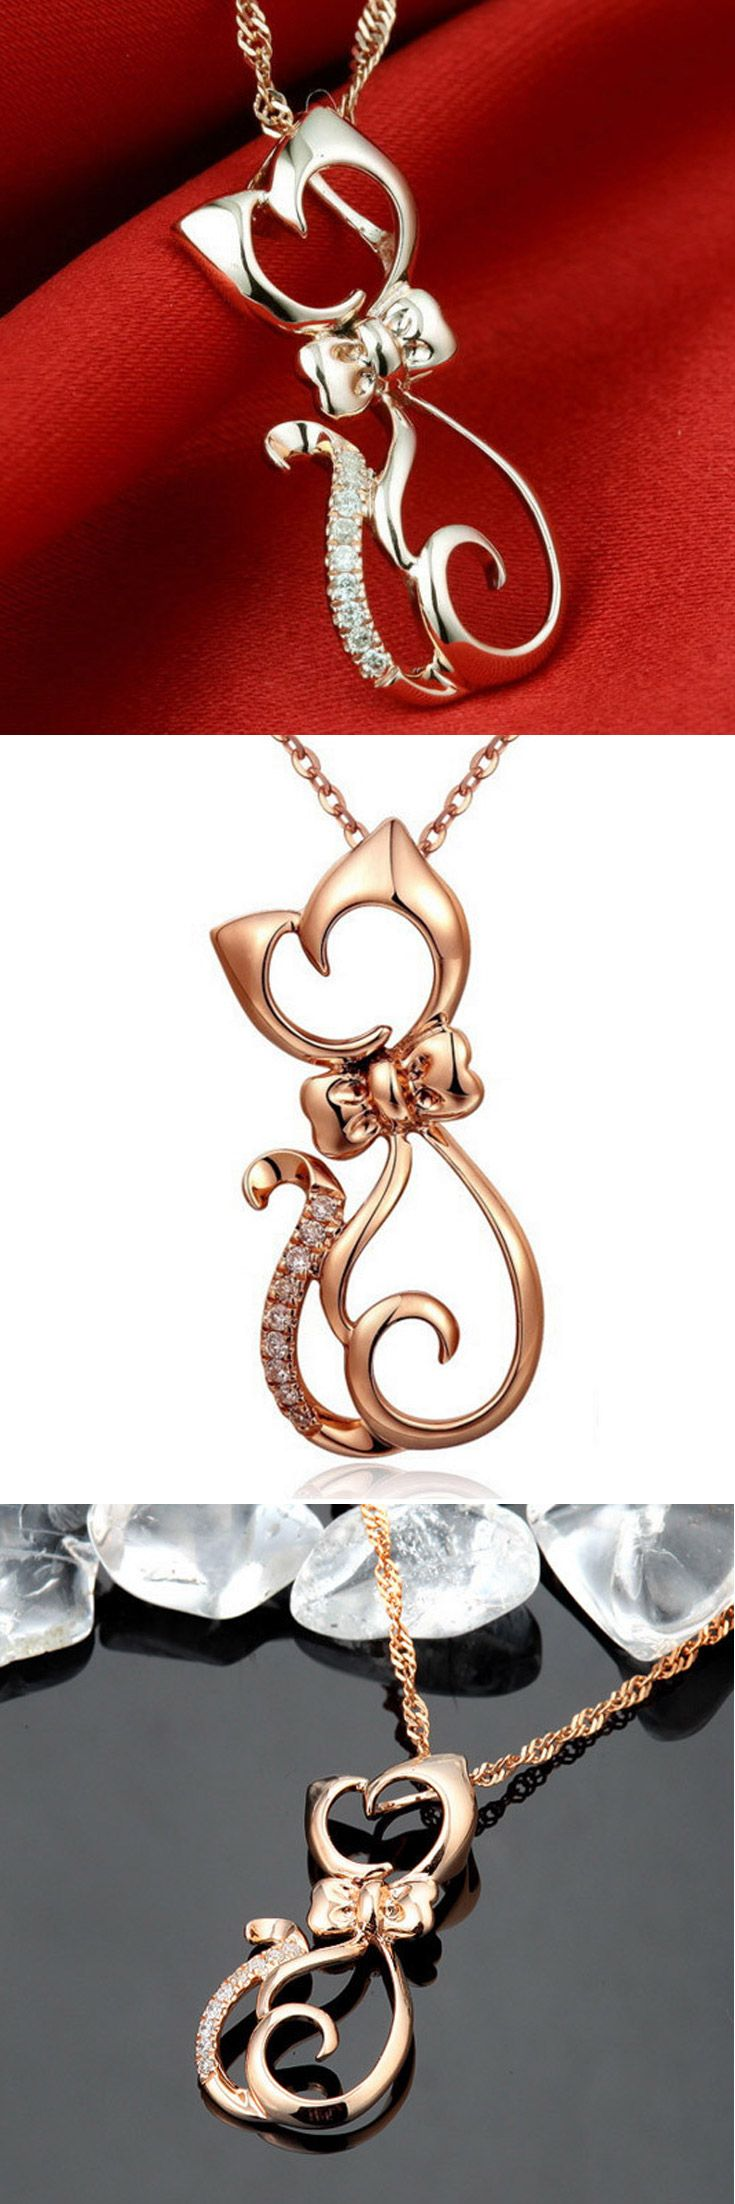 Love Cats? Then this Cat pendant necklace is for you. Click and Grab yours at 50% off today.